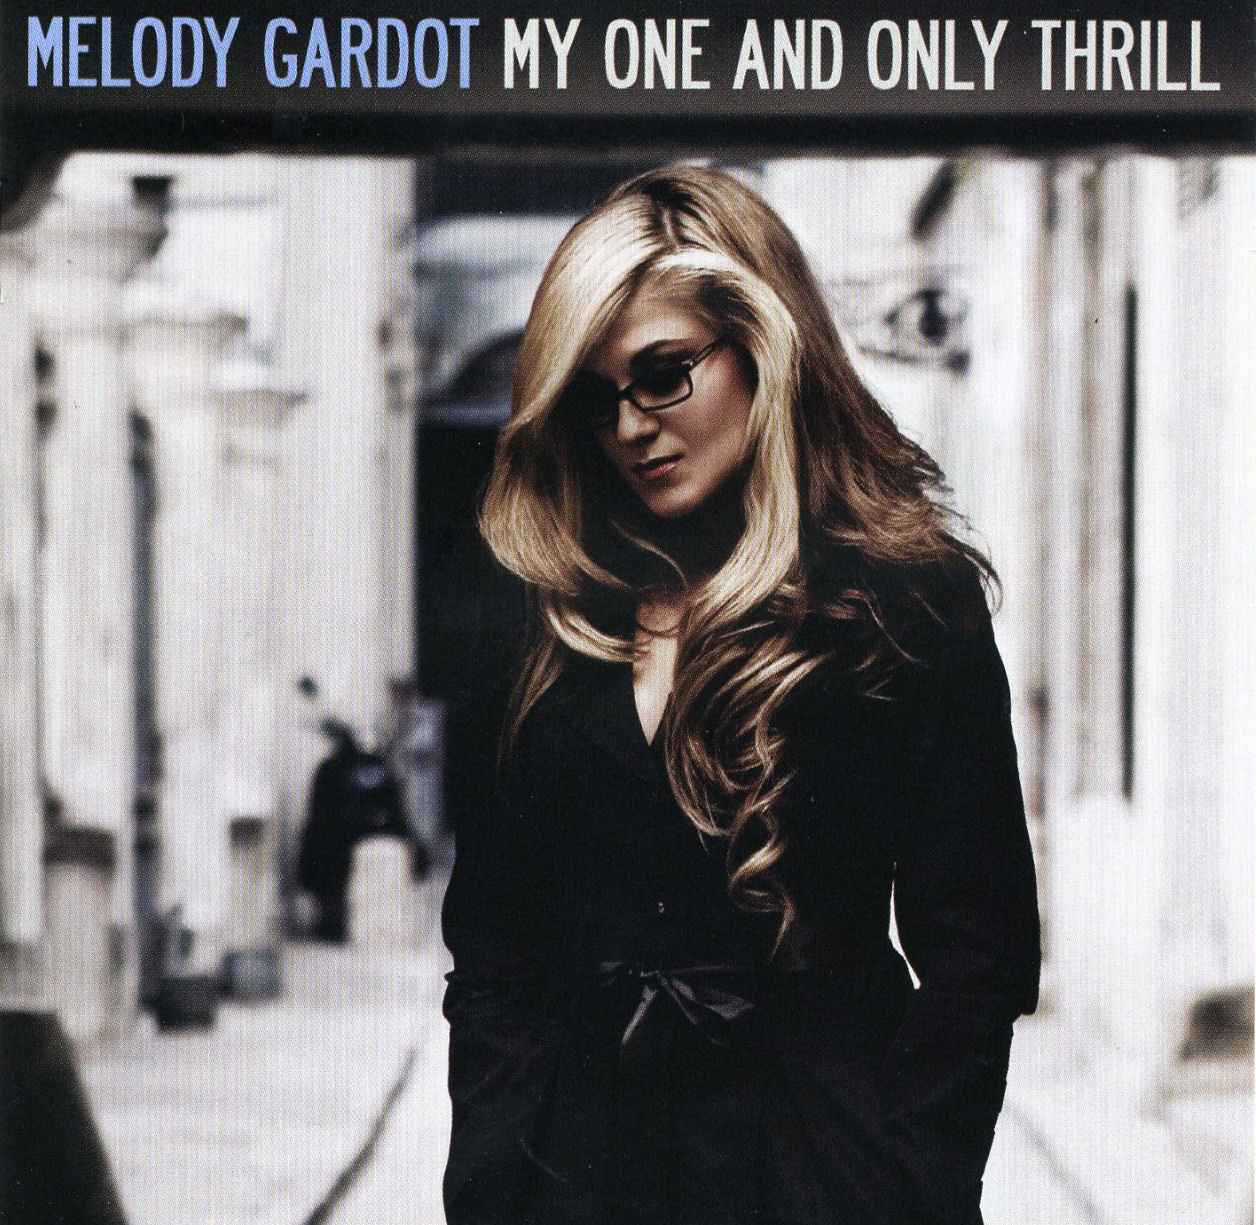 Melody+Gardot+-+My+One+and+Only+Thrill+-+Front.jpg